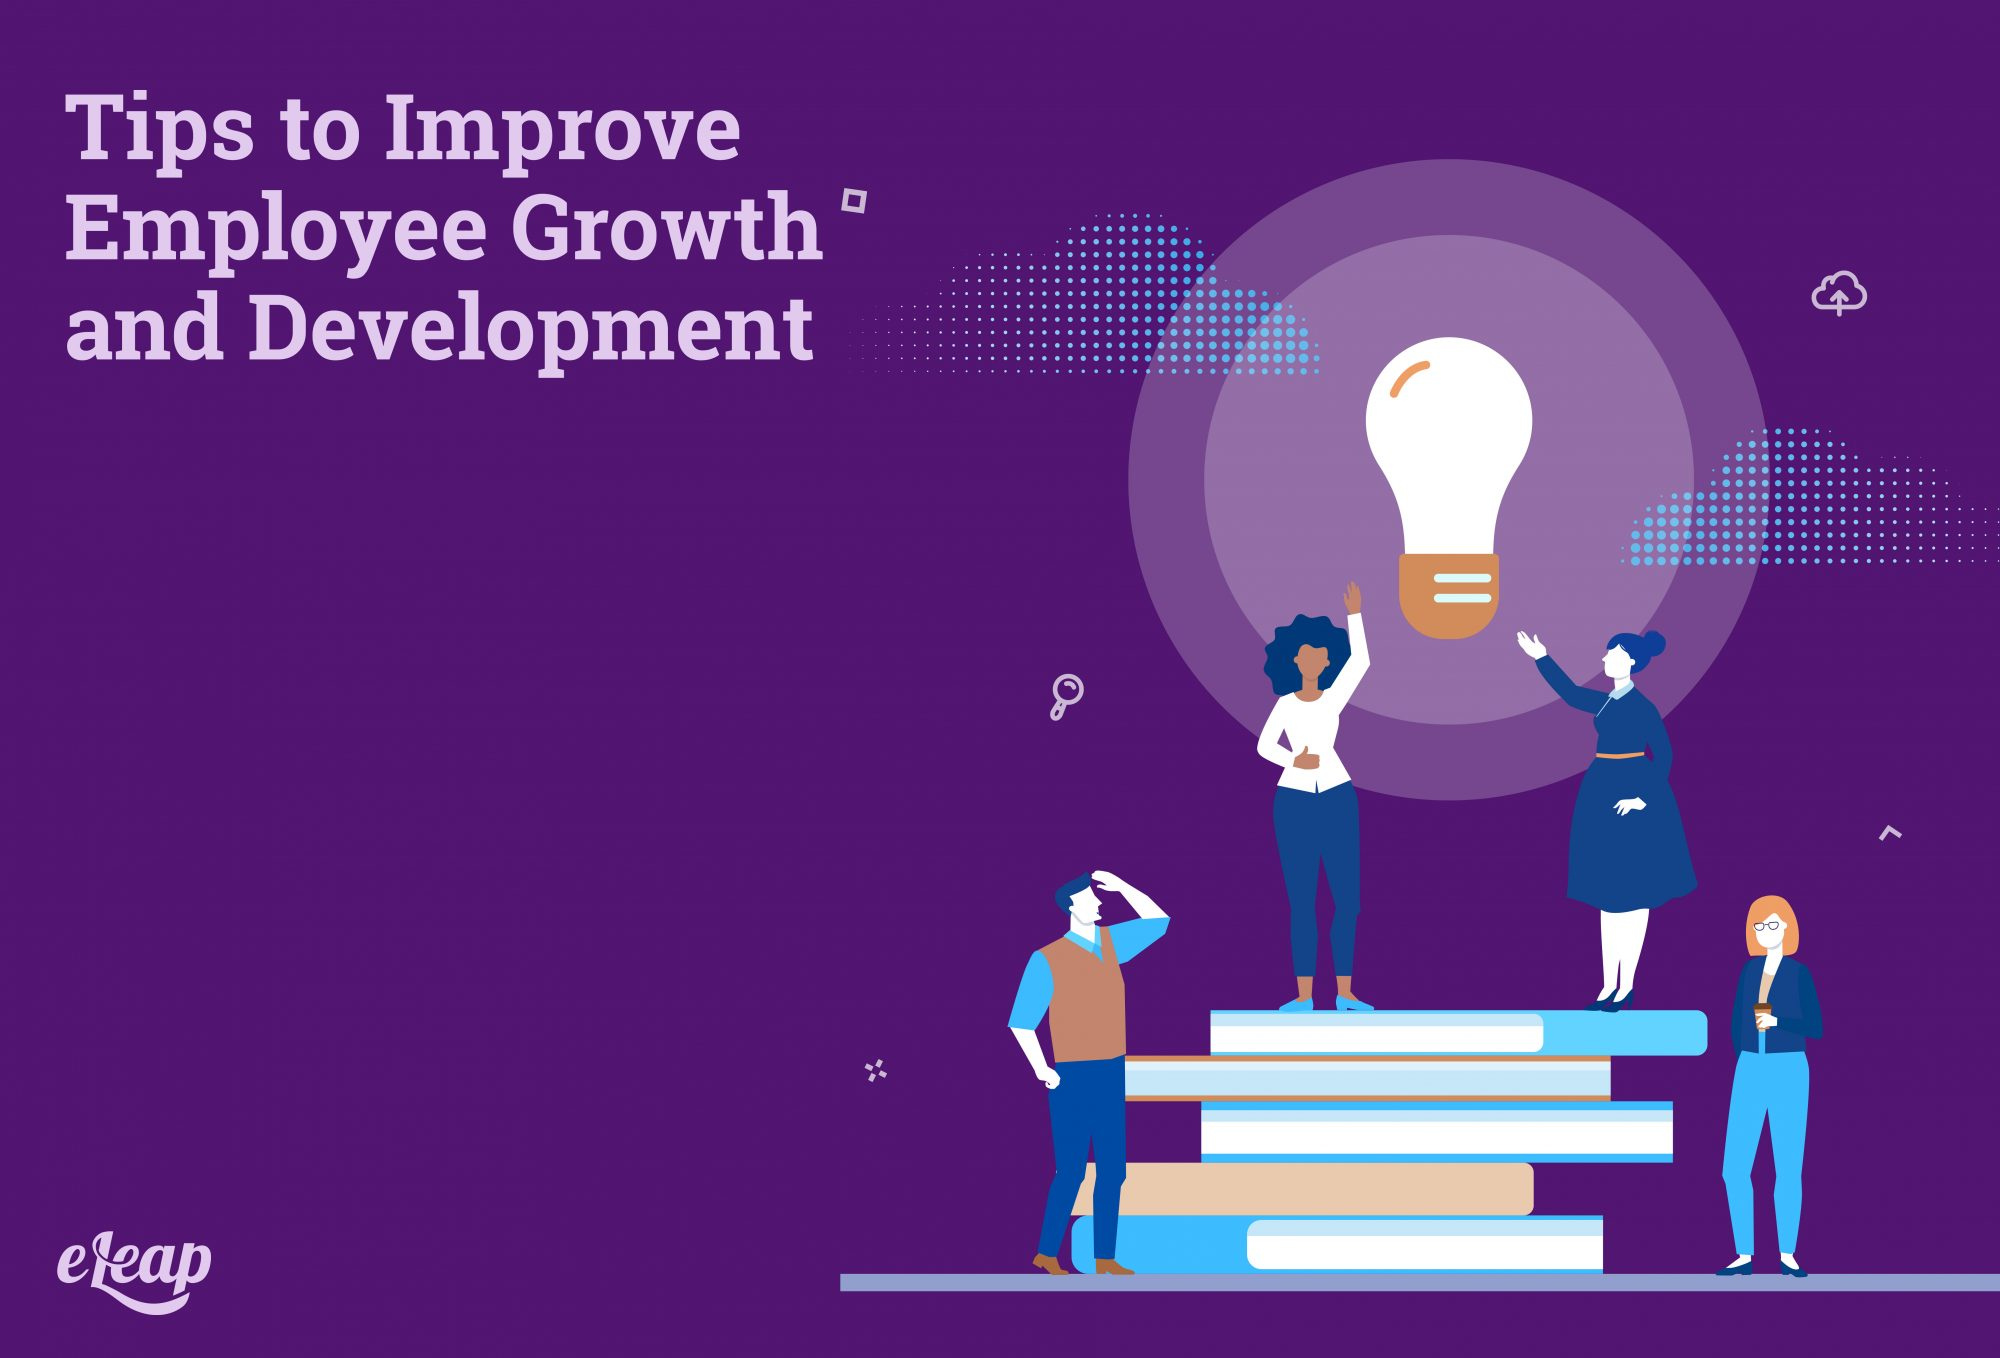 Tips to Improve Employee Growth and Development